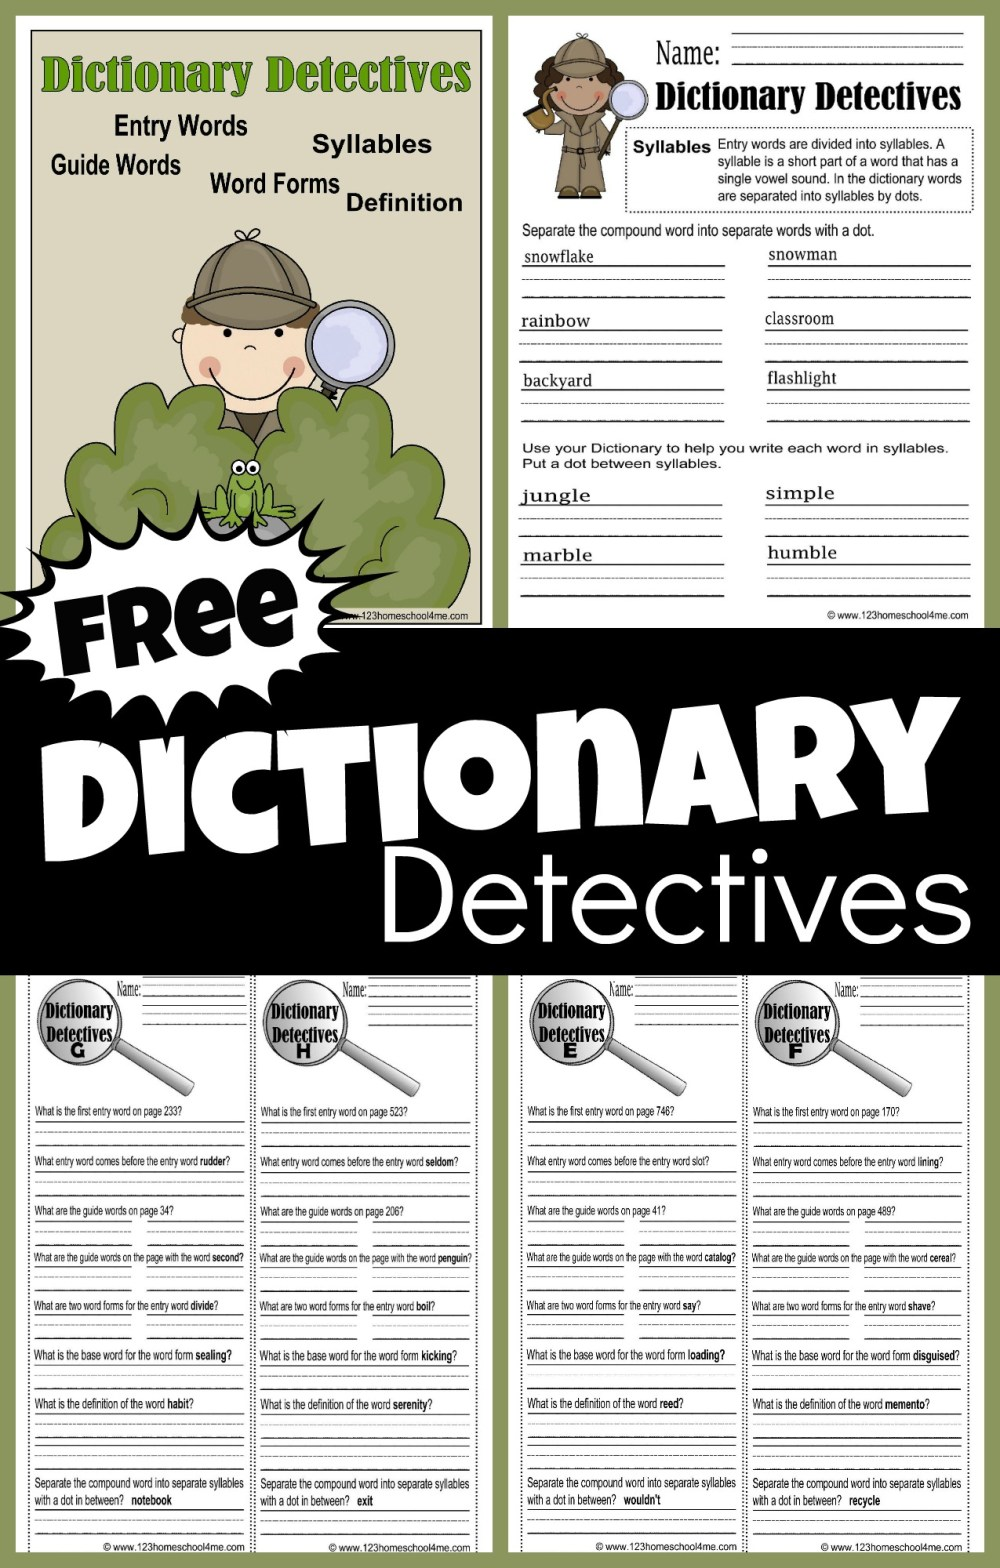 medium resolution of FREE Dictionary Detective Worksheets for Kids